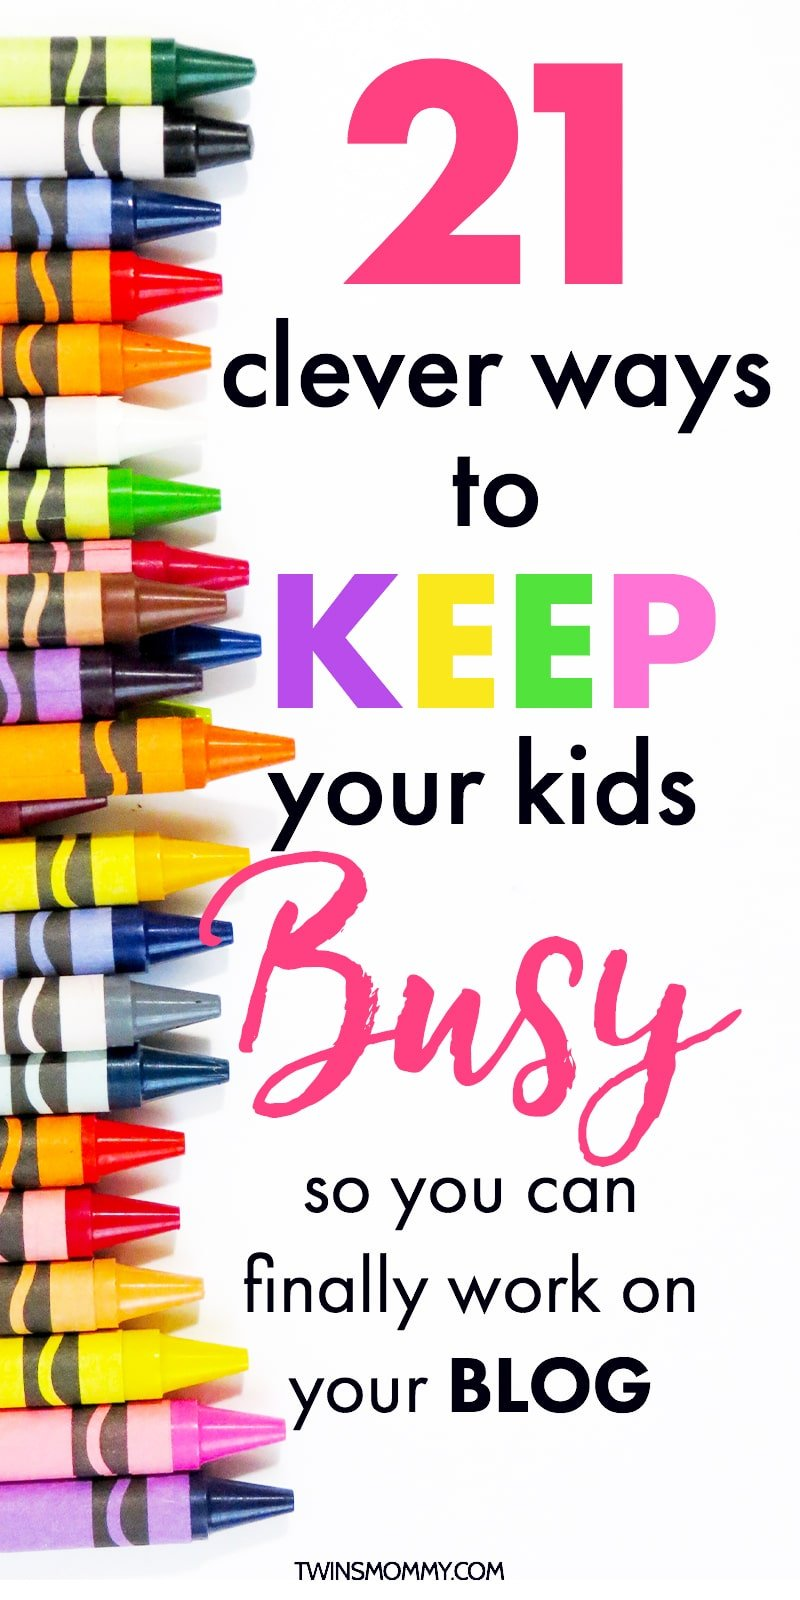 8a81c1d14 21 Clever Ways to Keep Kids Busy (So Mom Can Blog!) - Twins Mommy